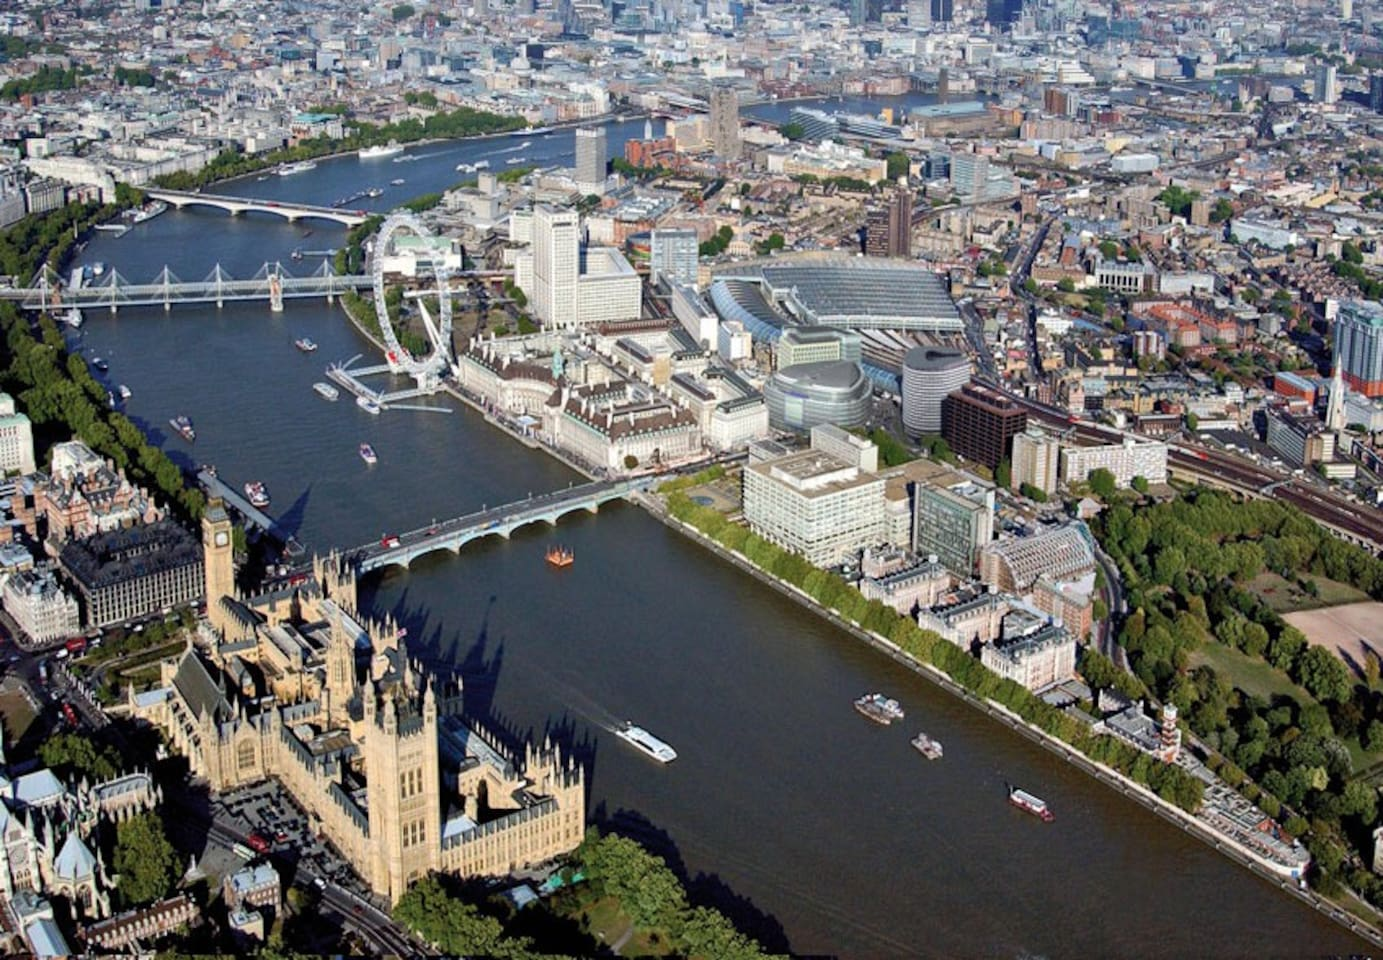 Big Ben, London Eye and the Houses of Parliament at your door step